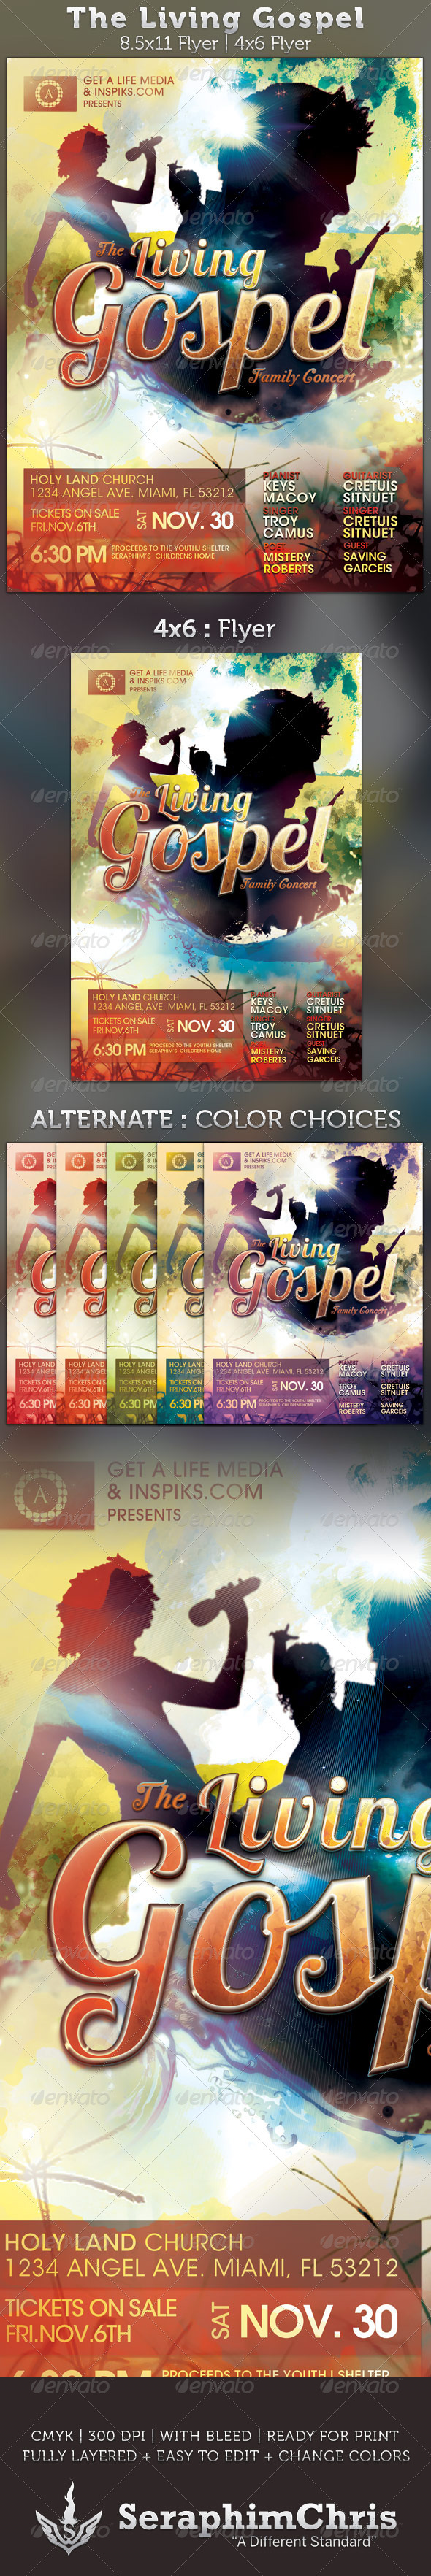 The Living Gospel Church Concert Flyer Template